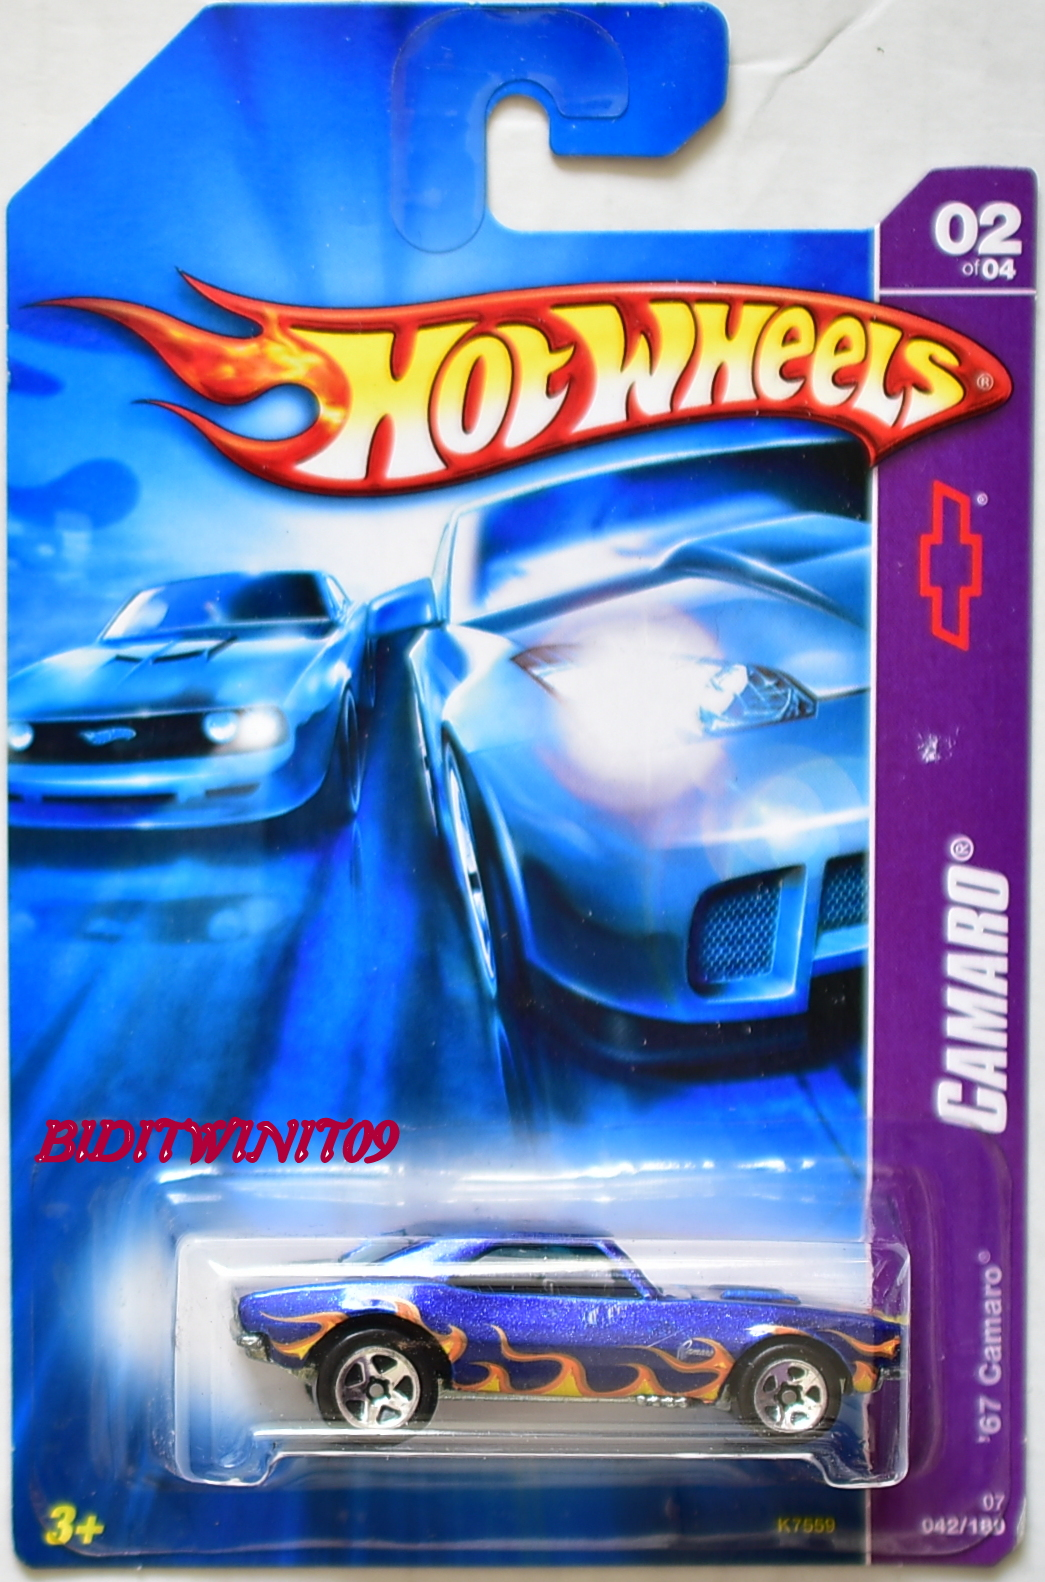 HOT WHEELS 2007 '67 CAMARO BLUE #2/4 MIB